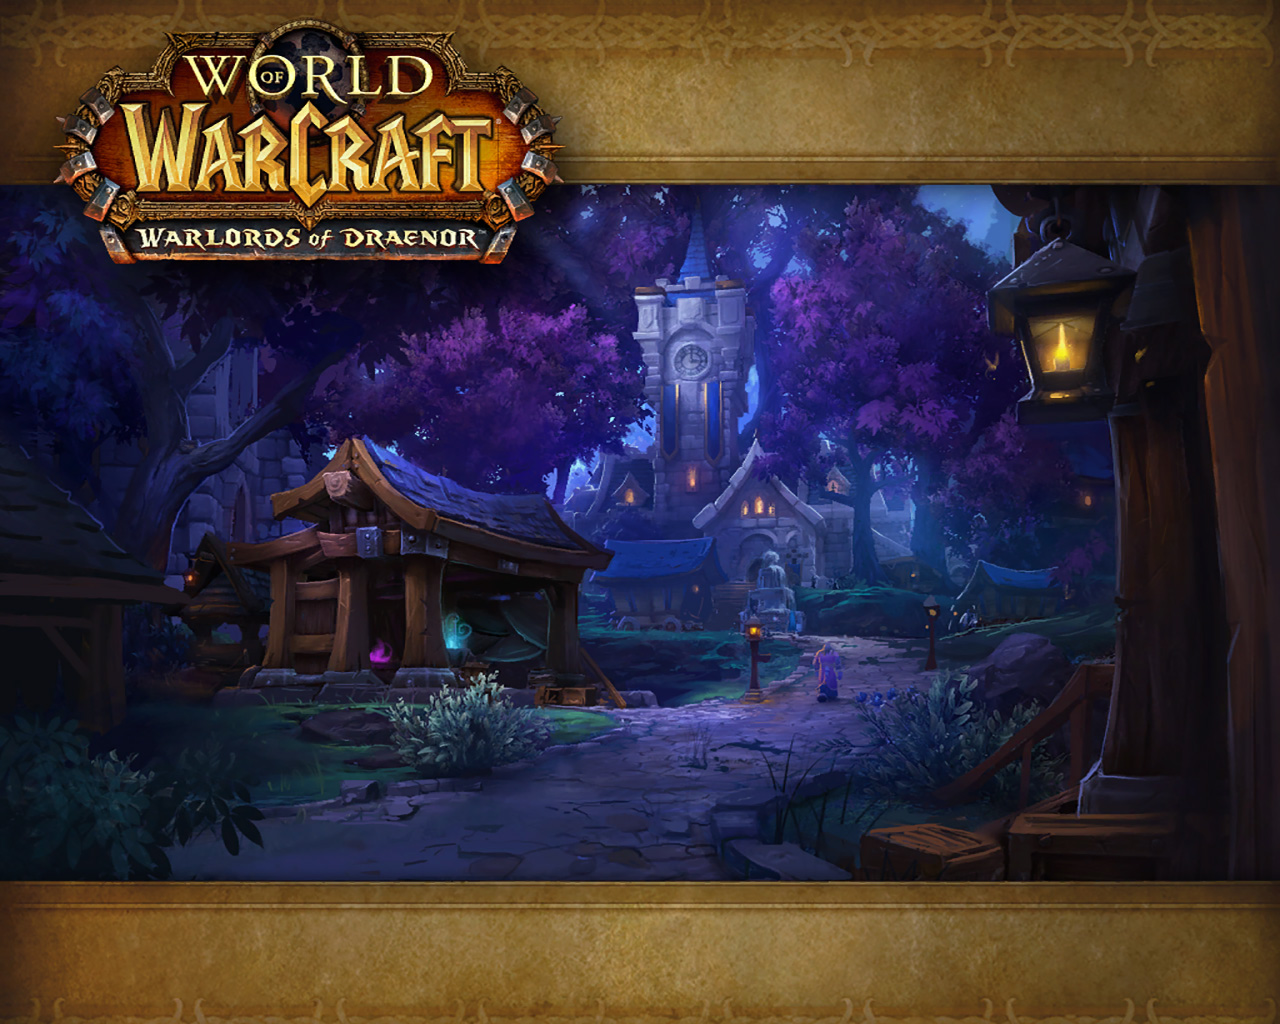 loadscreen_alliancegarrison_2.jpg